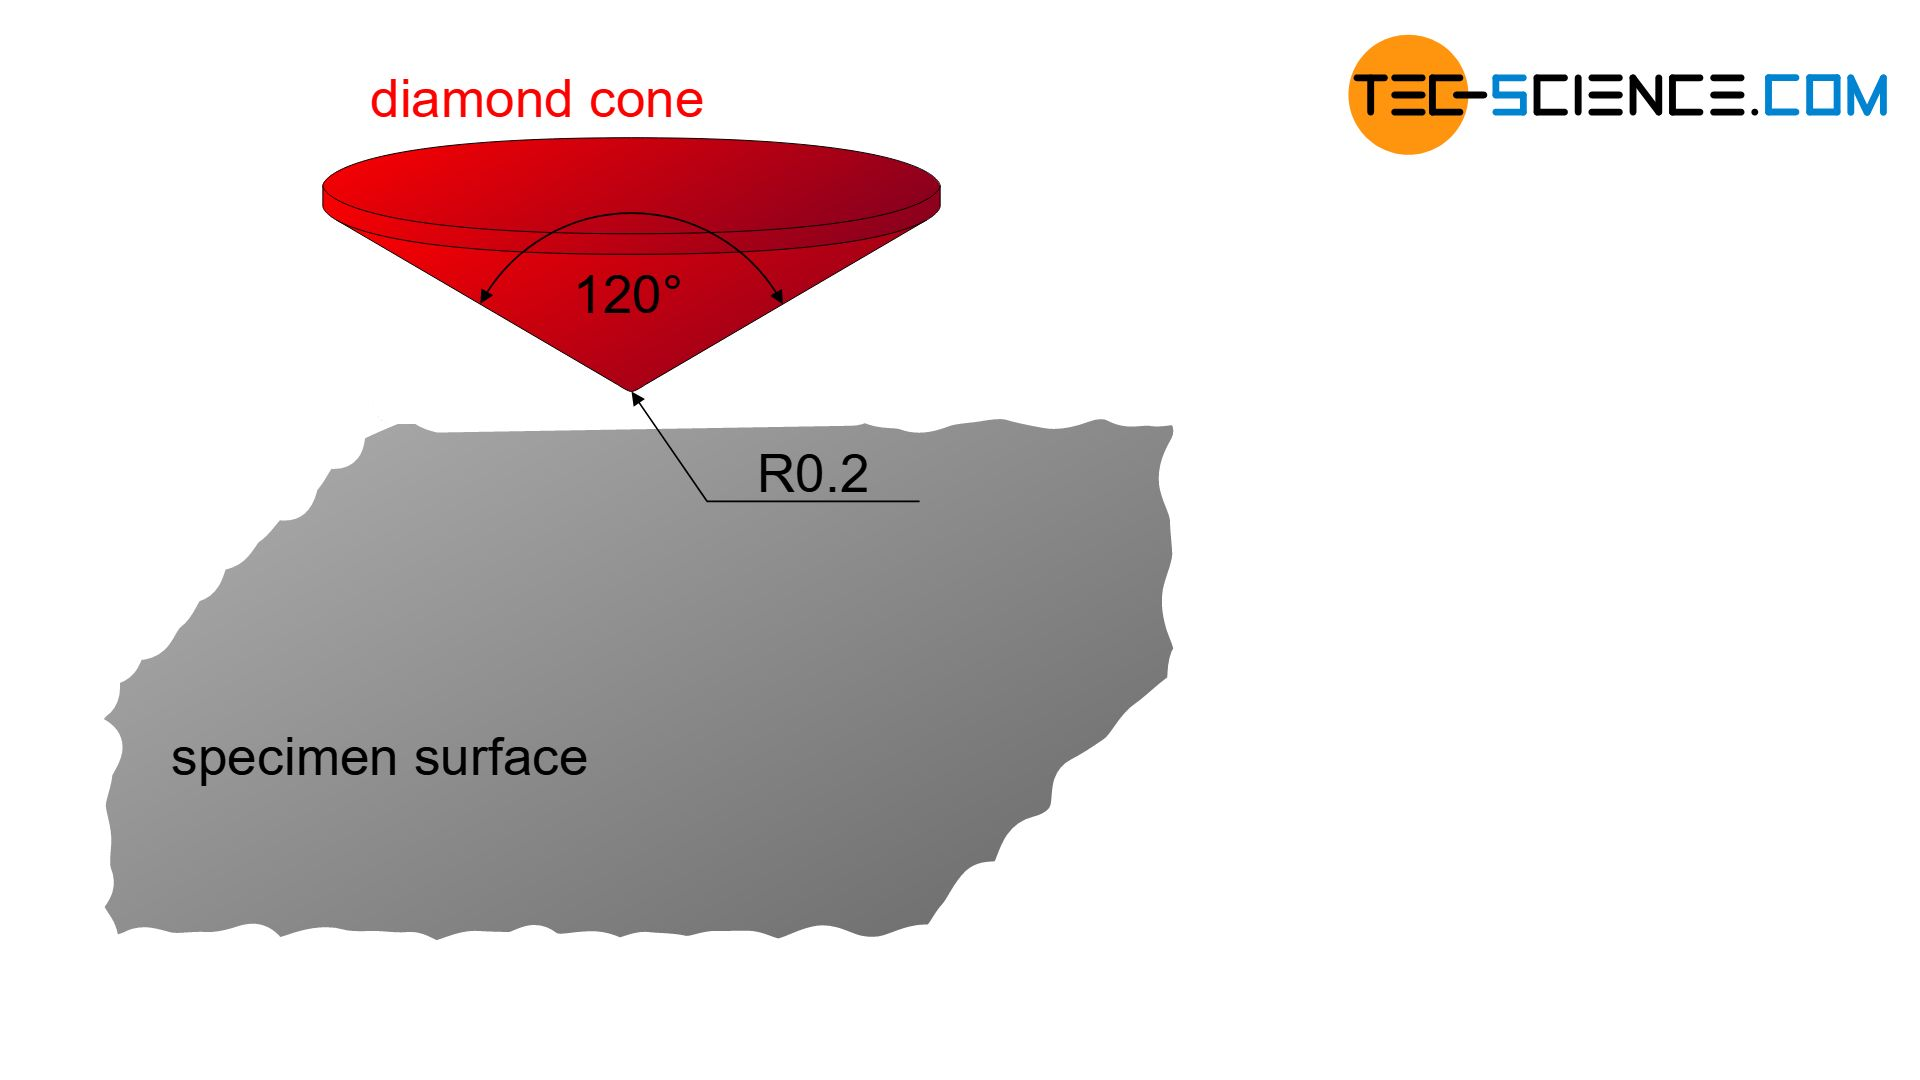 Diamond cone for Rockwell hardness testing